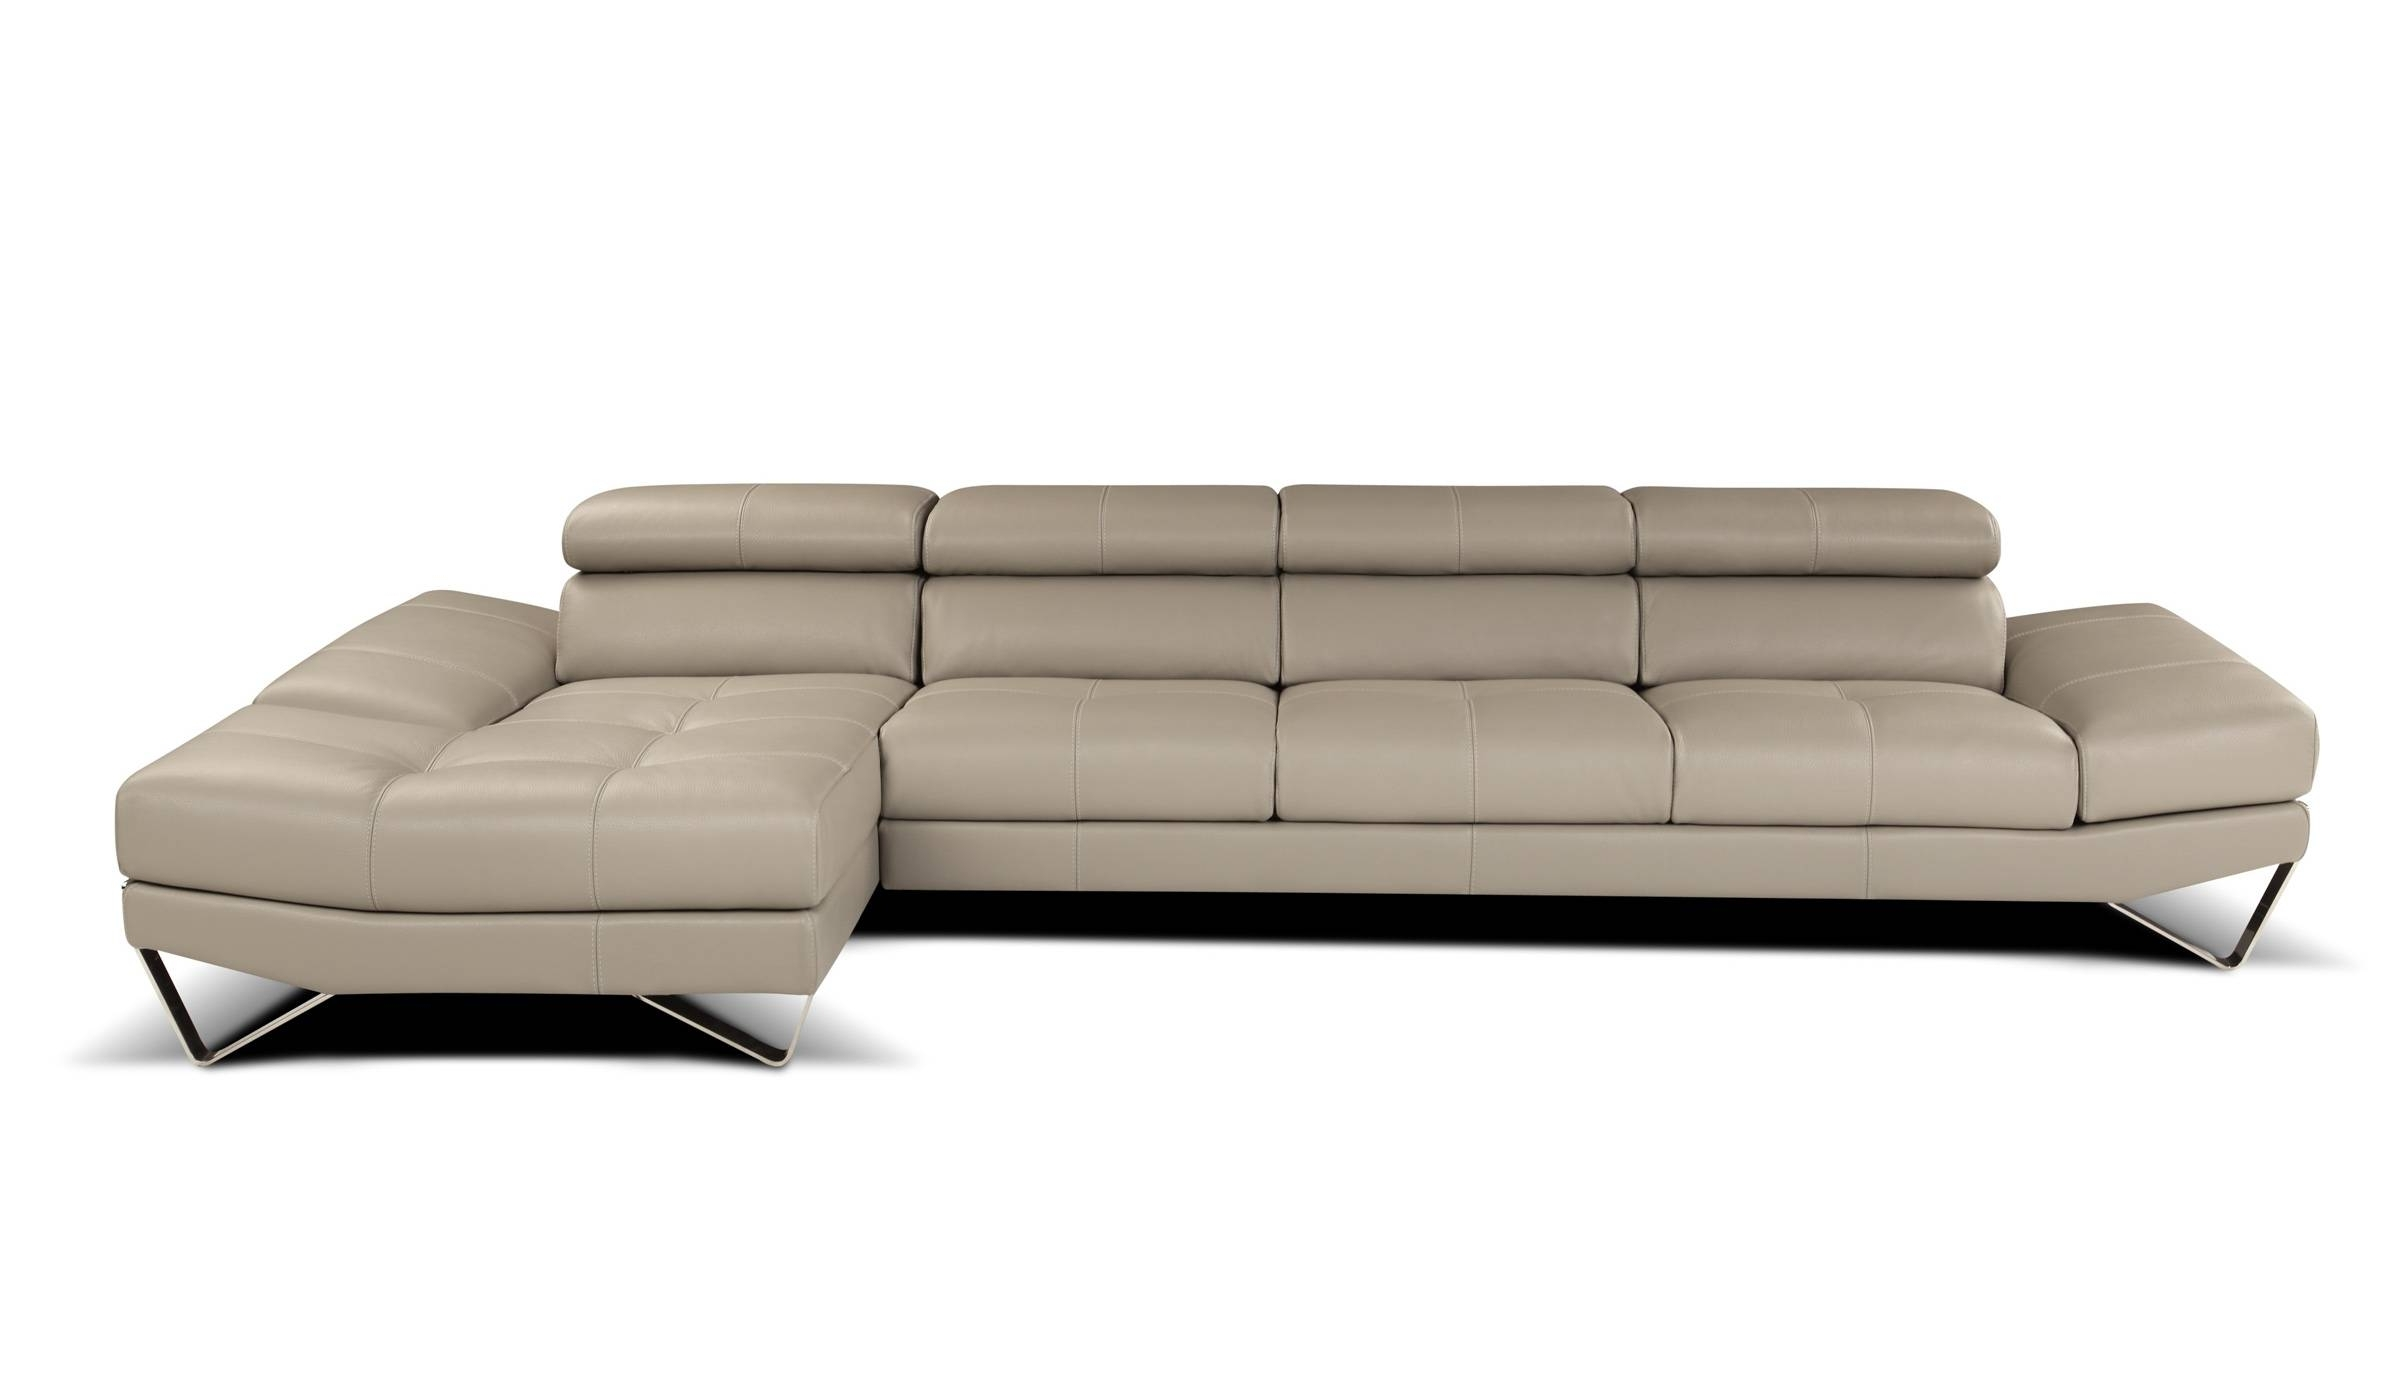 Most Popular Sophisticated All Italian Leather Sectional Sofa Spokane Pertaining To High End Leather Sectional Sofas (View 13 of 15)